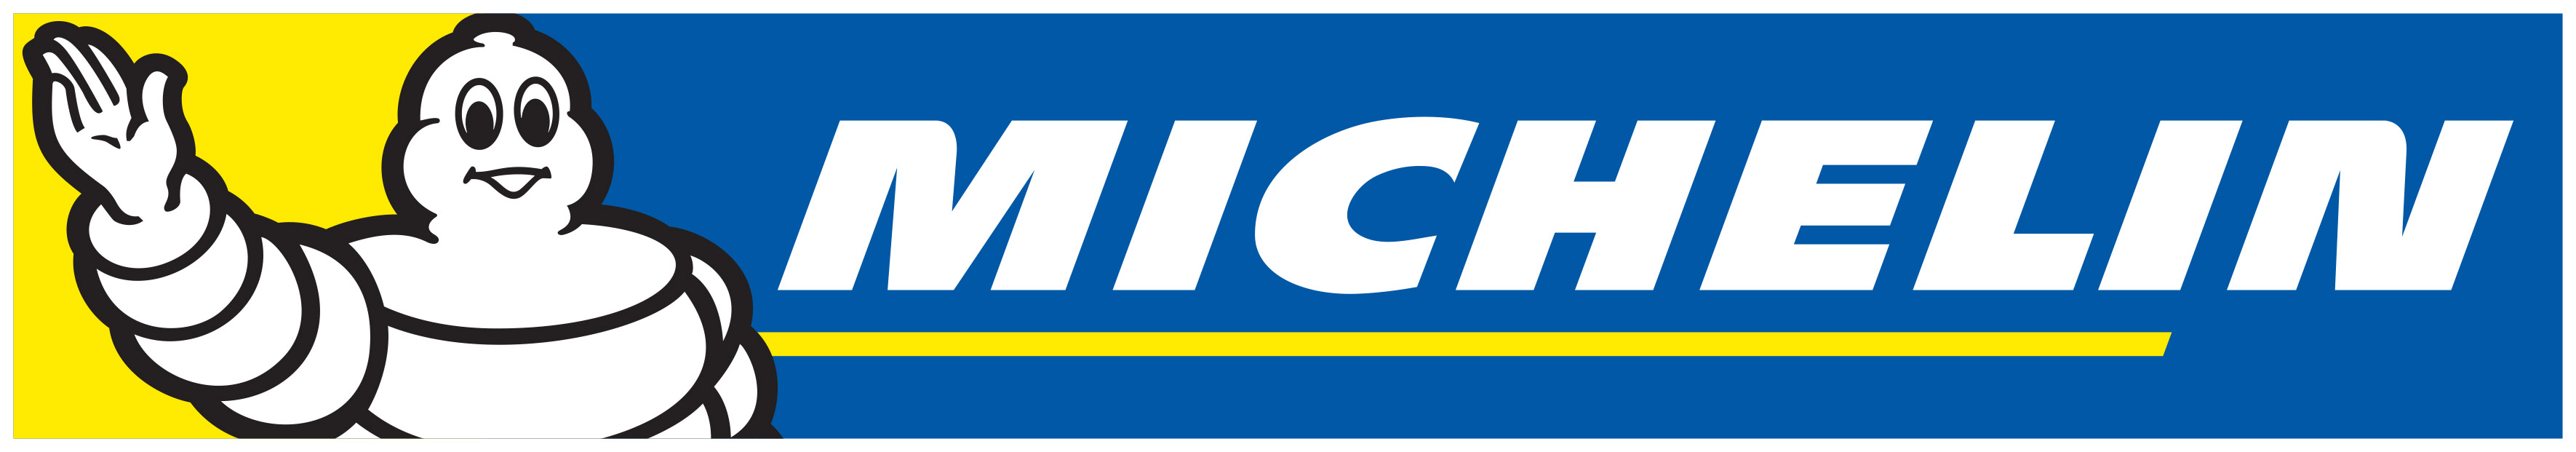 Michelin Tires Logo PNG - 103660